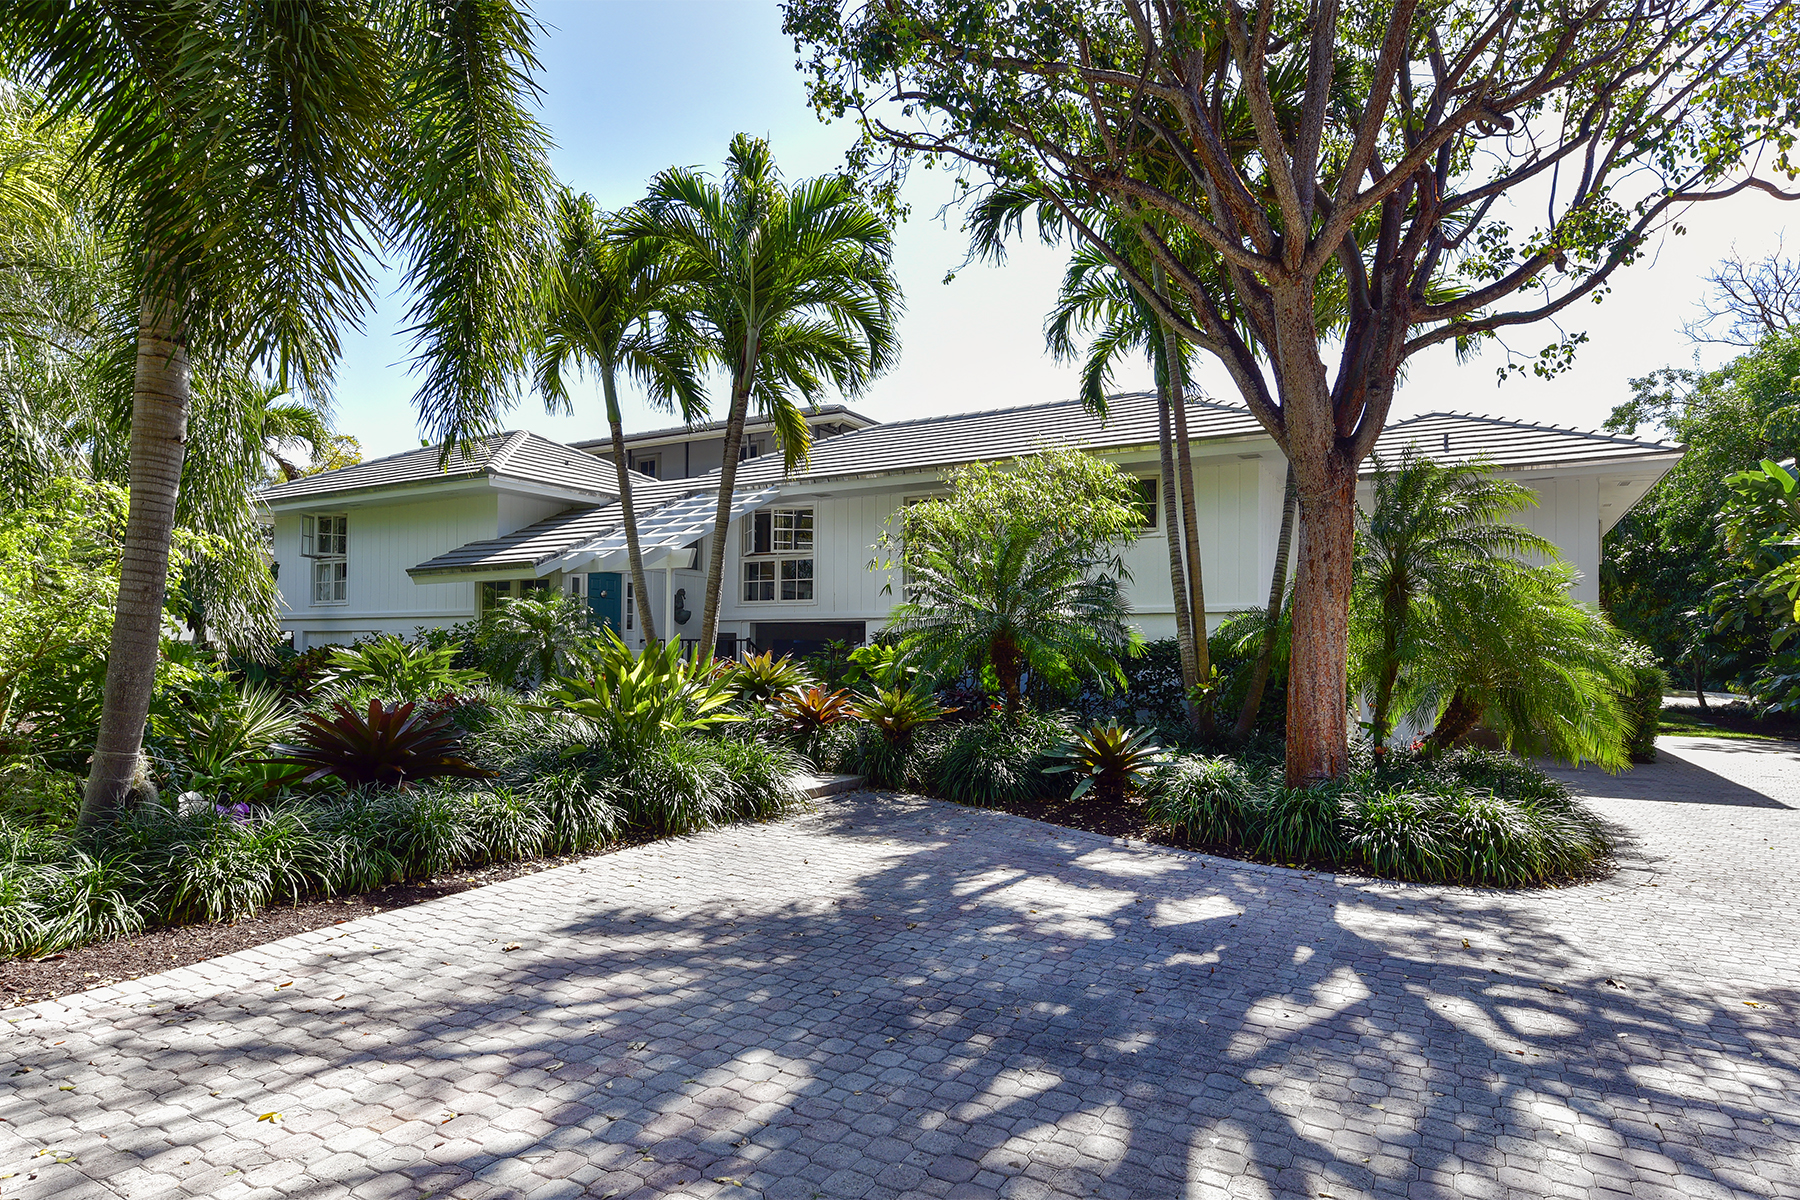 Additional photo for property listing at Golf Course Living at Ocean Reef 29 Dilly Tree Park Key Largo, フロリダ 33037 アメリカ合衆国